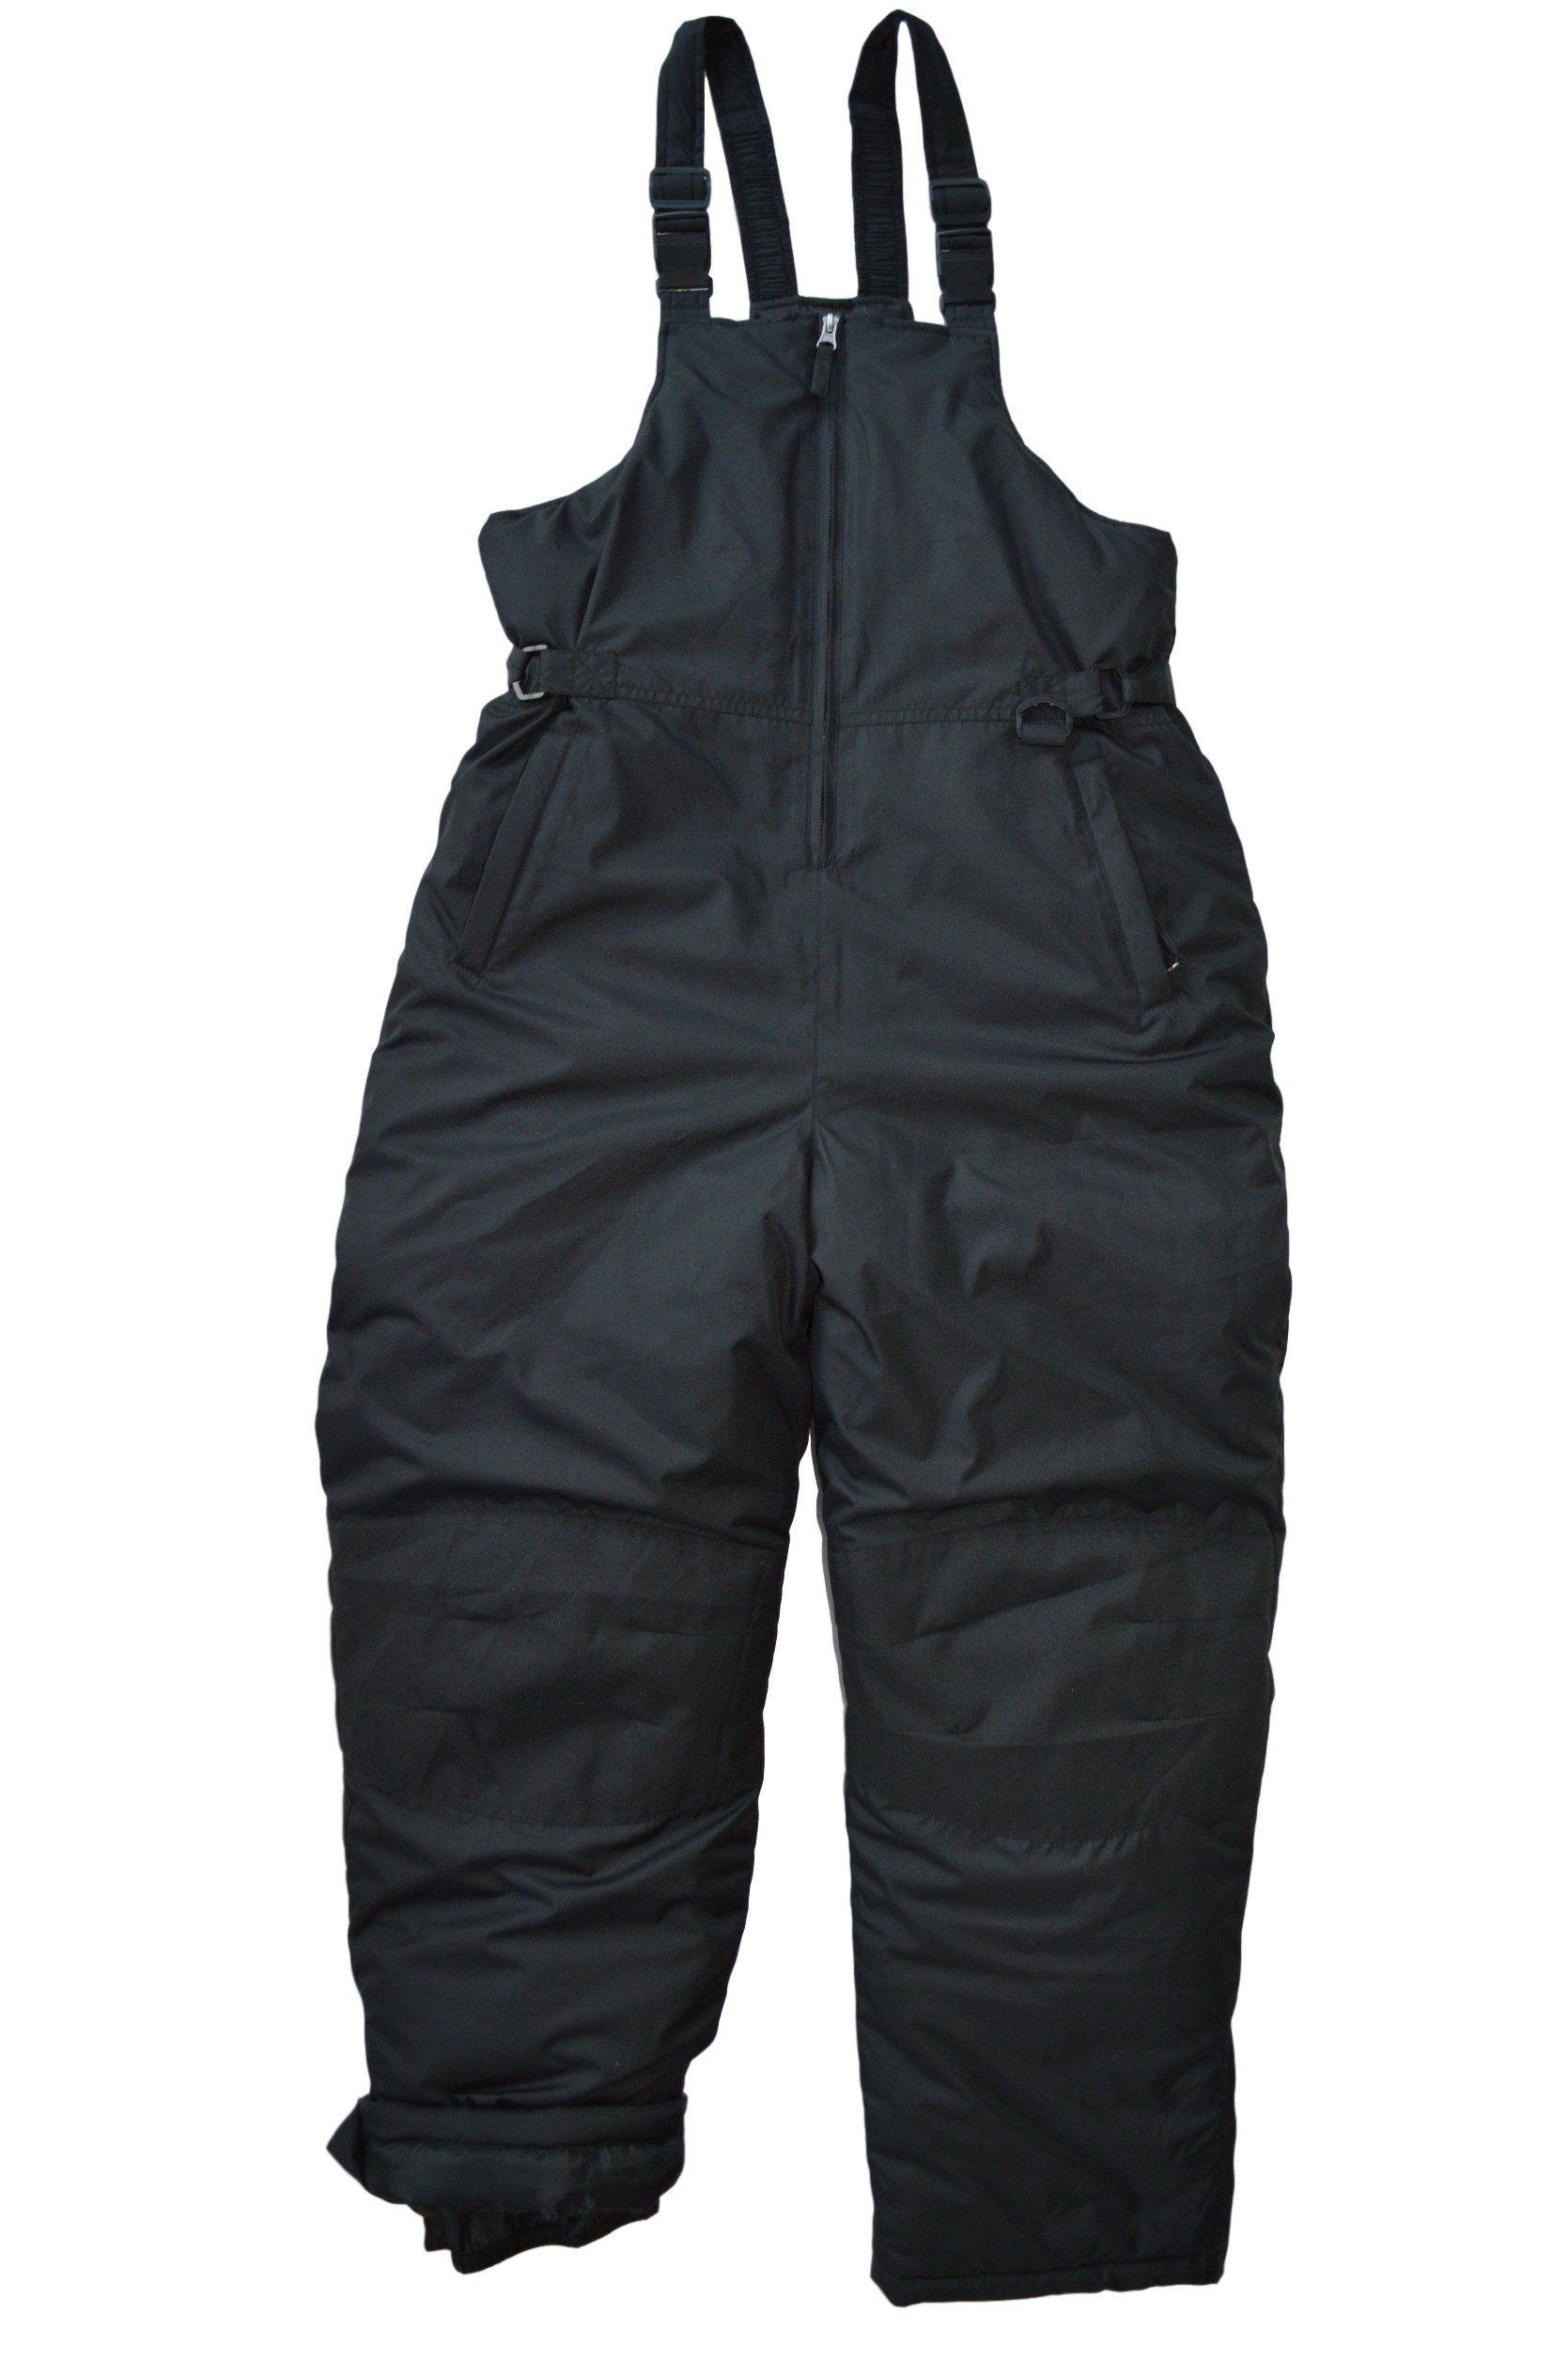 8b8f11ccc Snowsuits for Kids Youth Husky Insulated Bib Snow Pants Black (12-14 ...